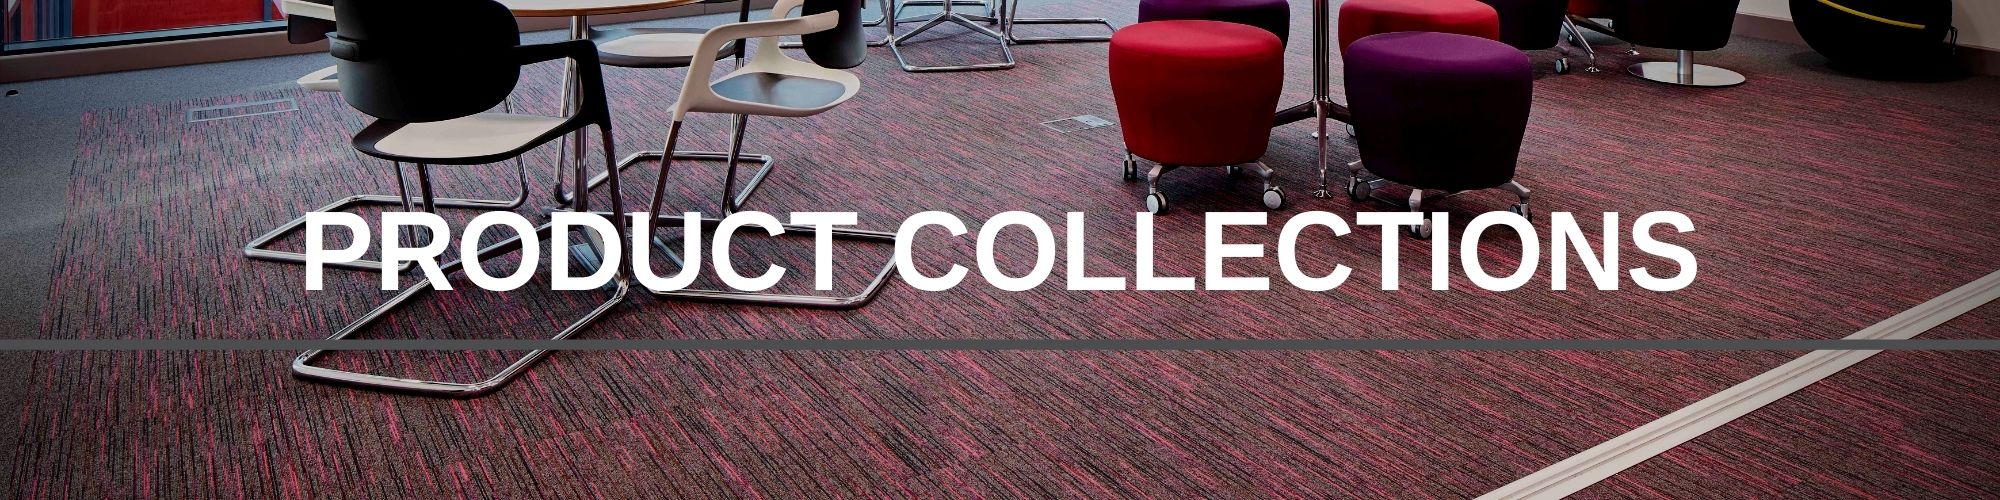 PRODUCT COLLECTIONS | Paragon Carpet Tiles | Commercial Carpet Tiles